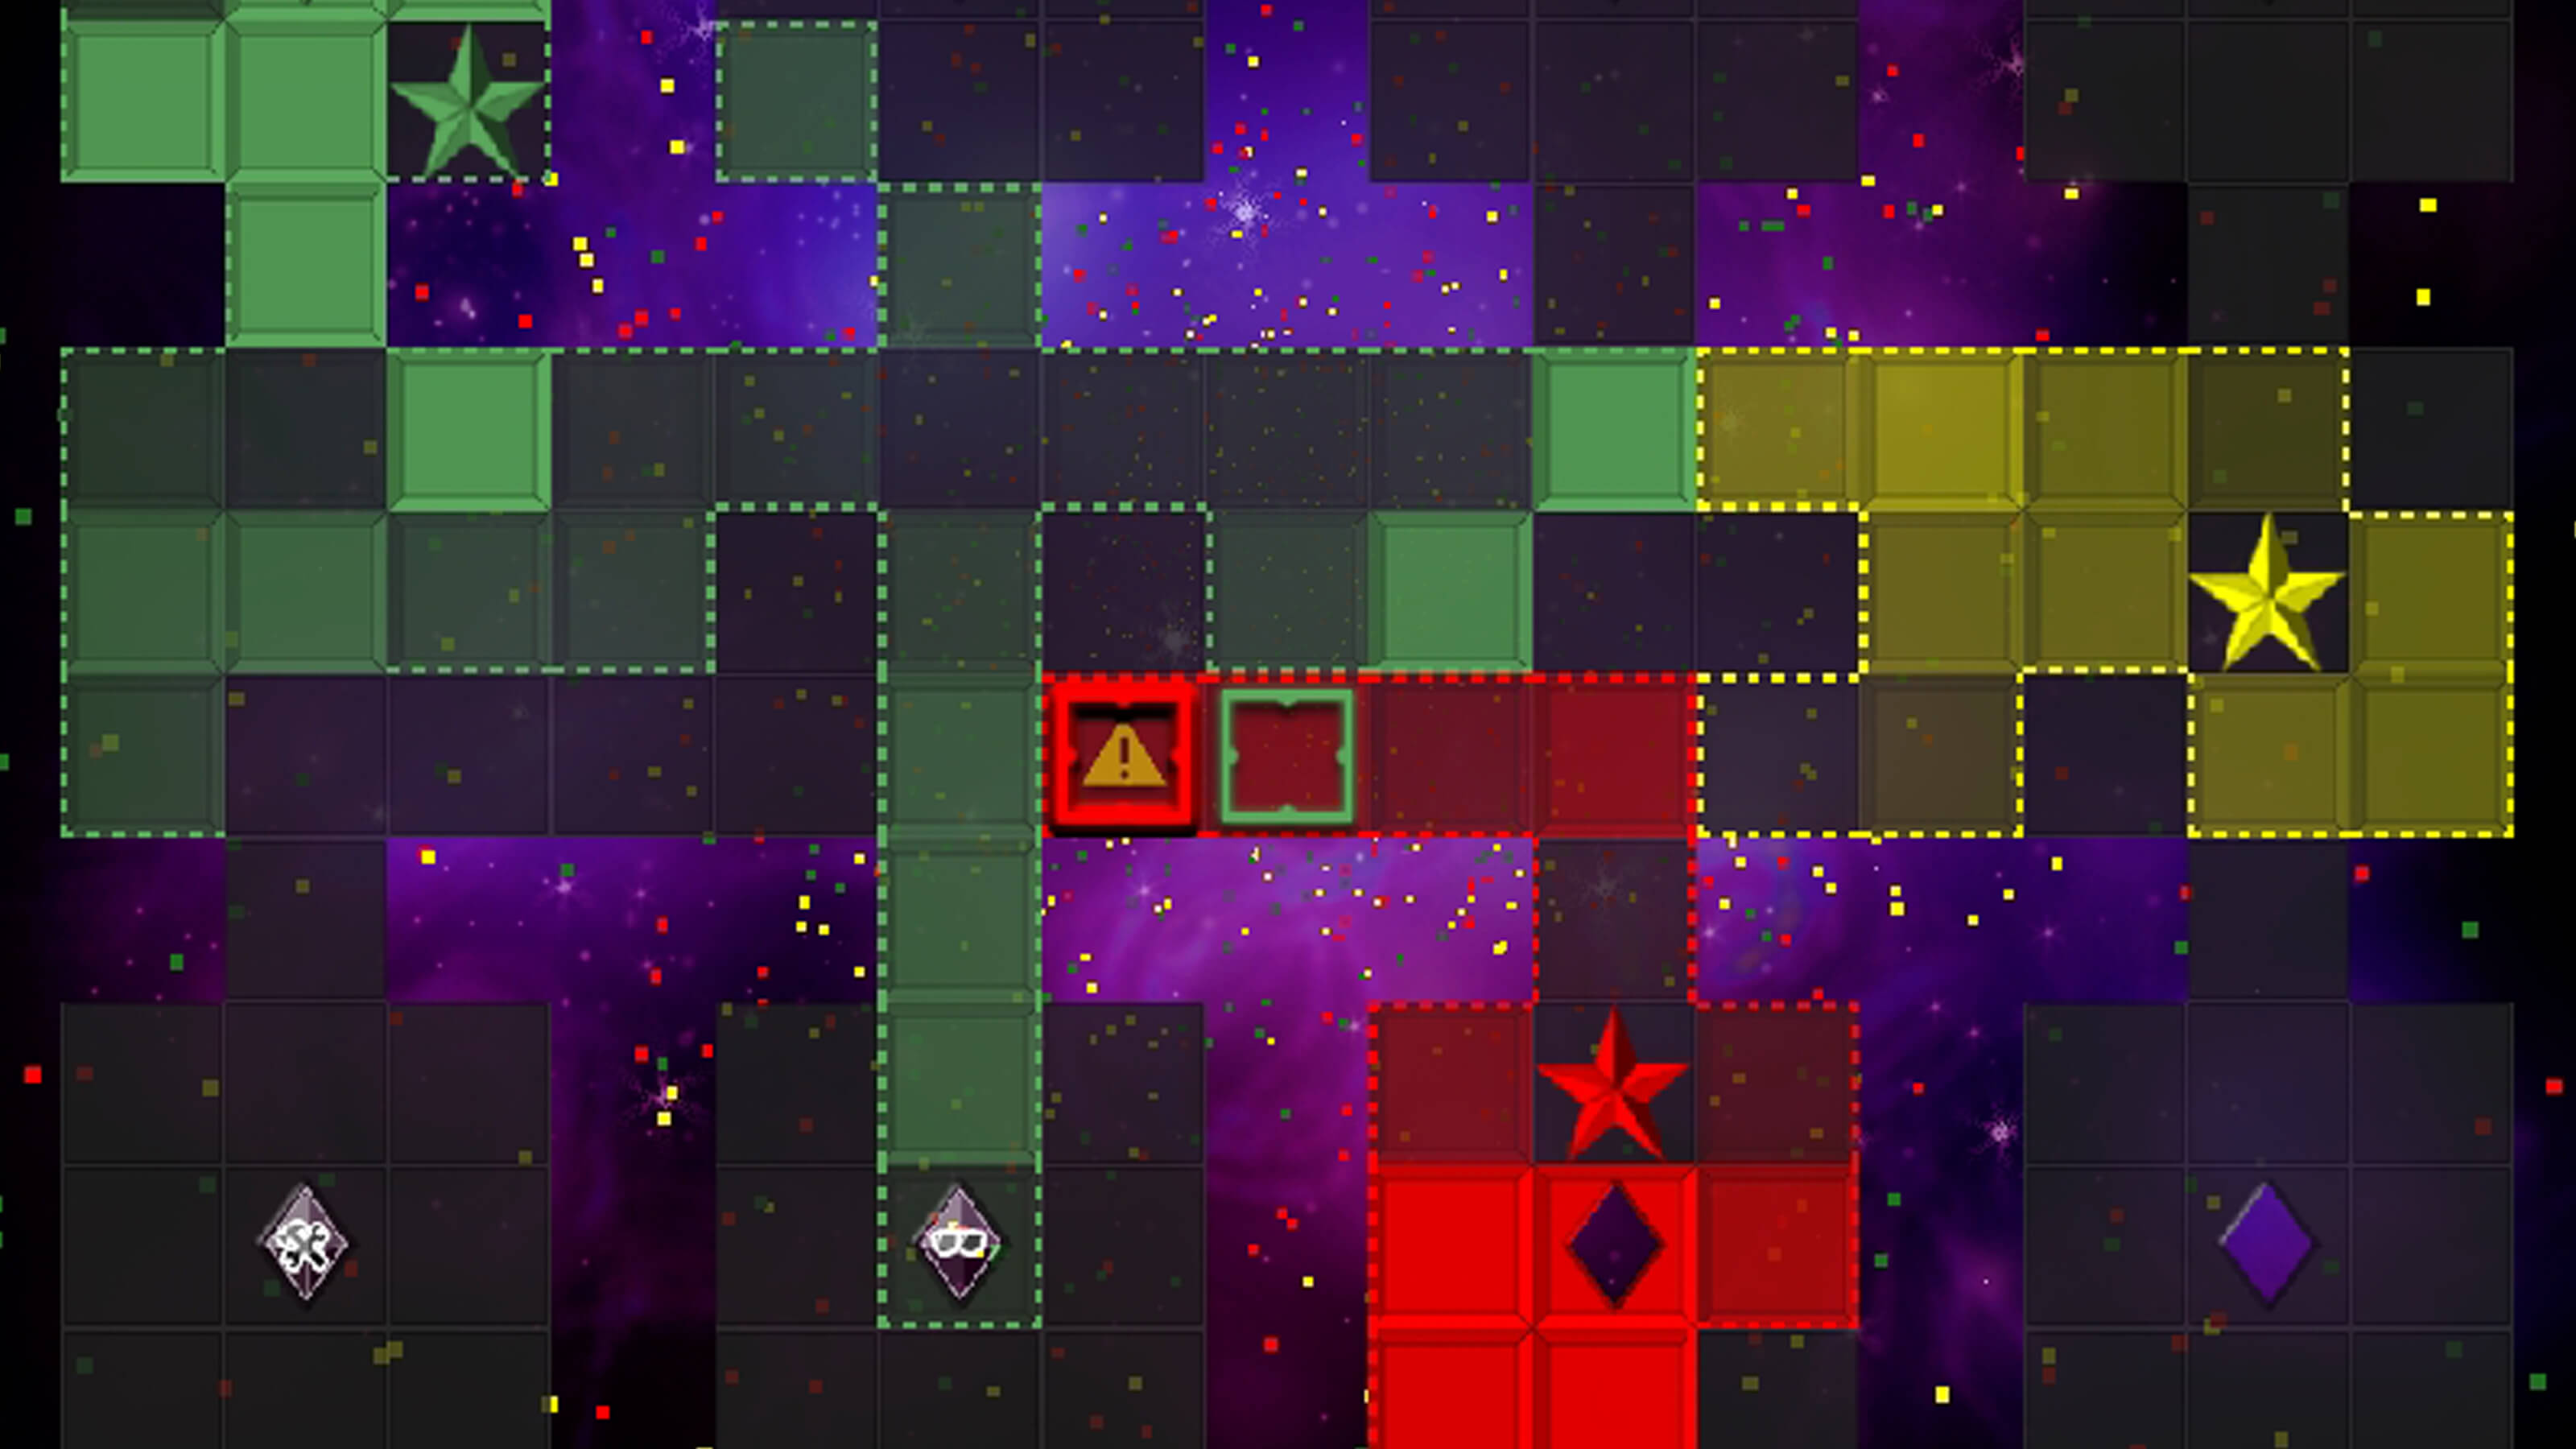 Yellow squares and red squares compete for grid space.